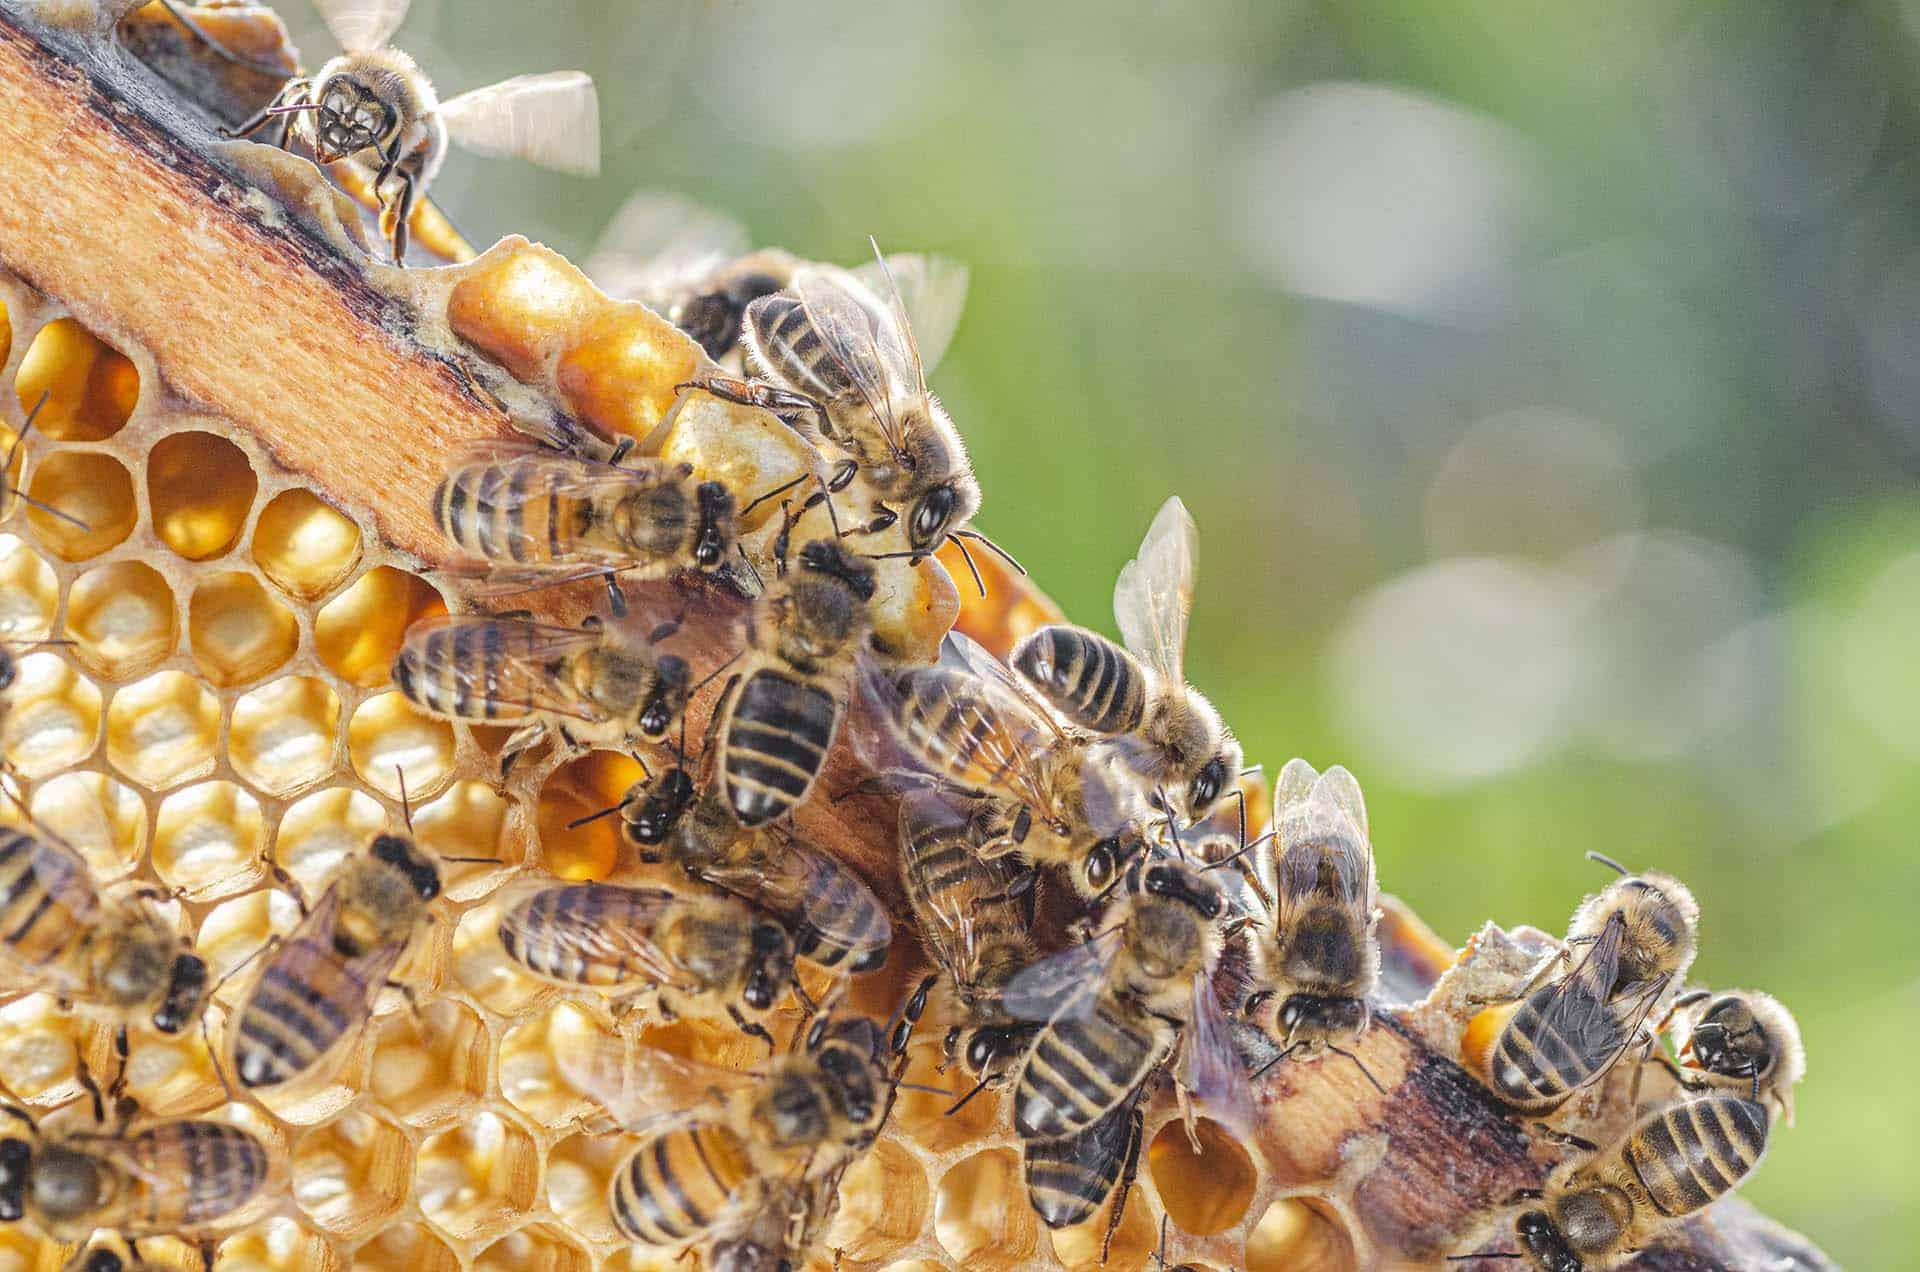 Honey bees cluster on a honey comb